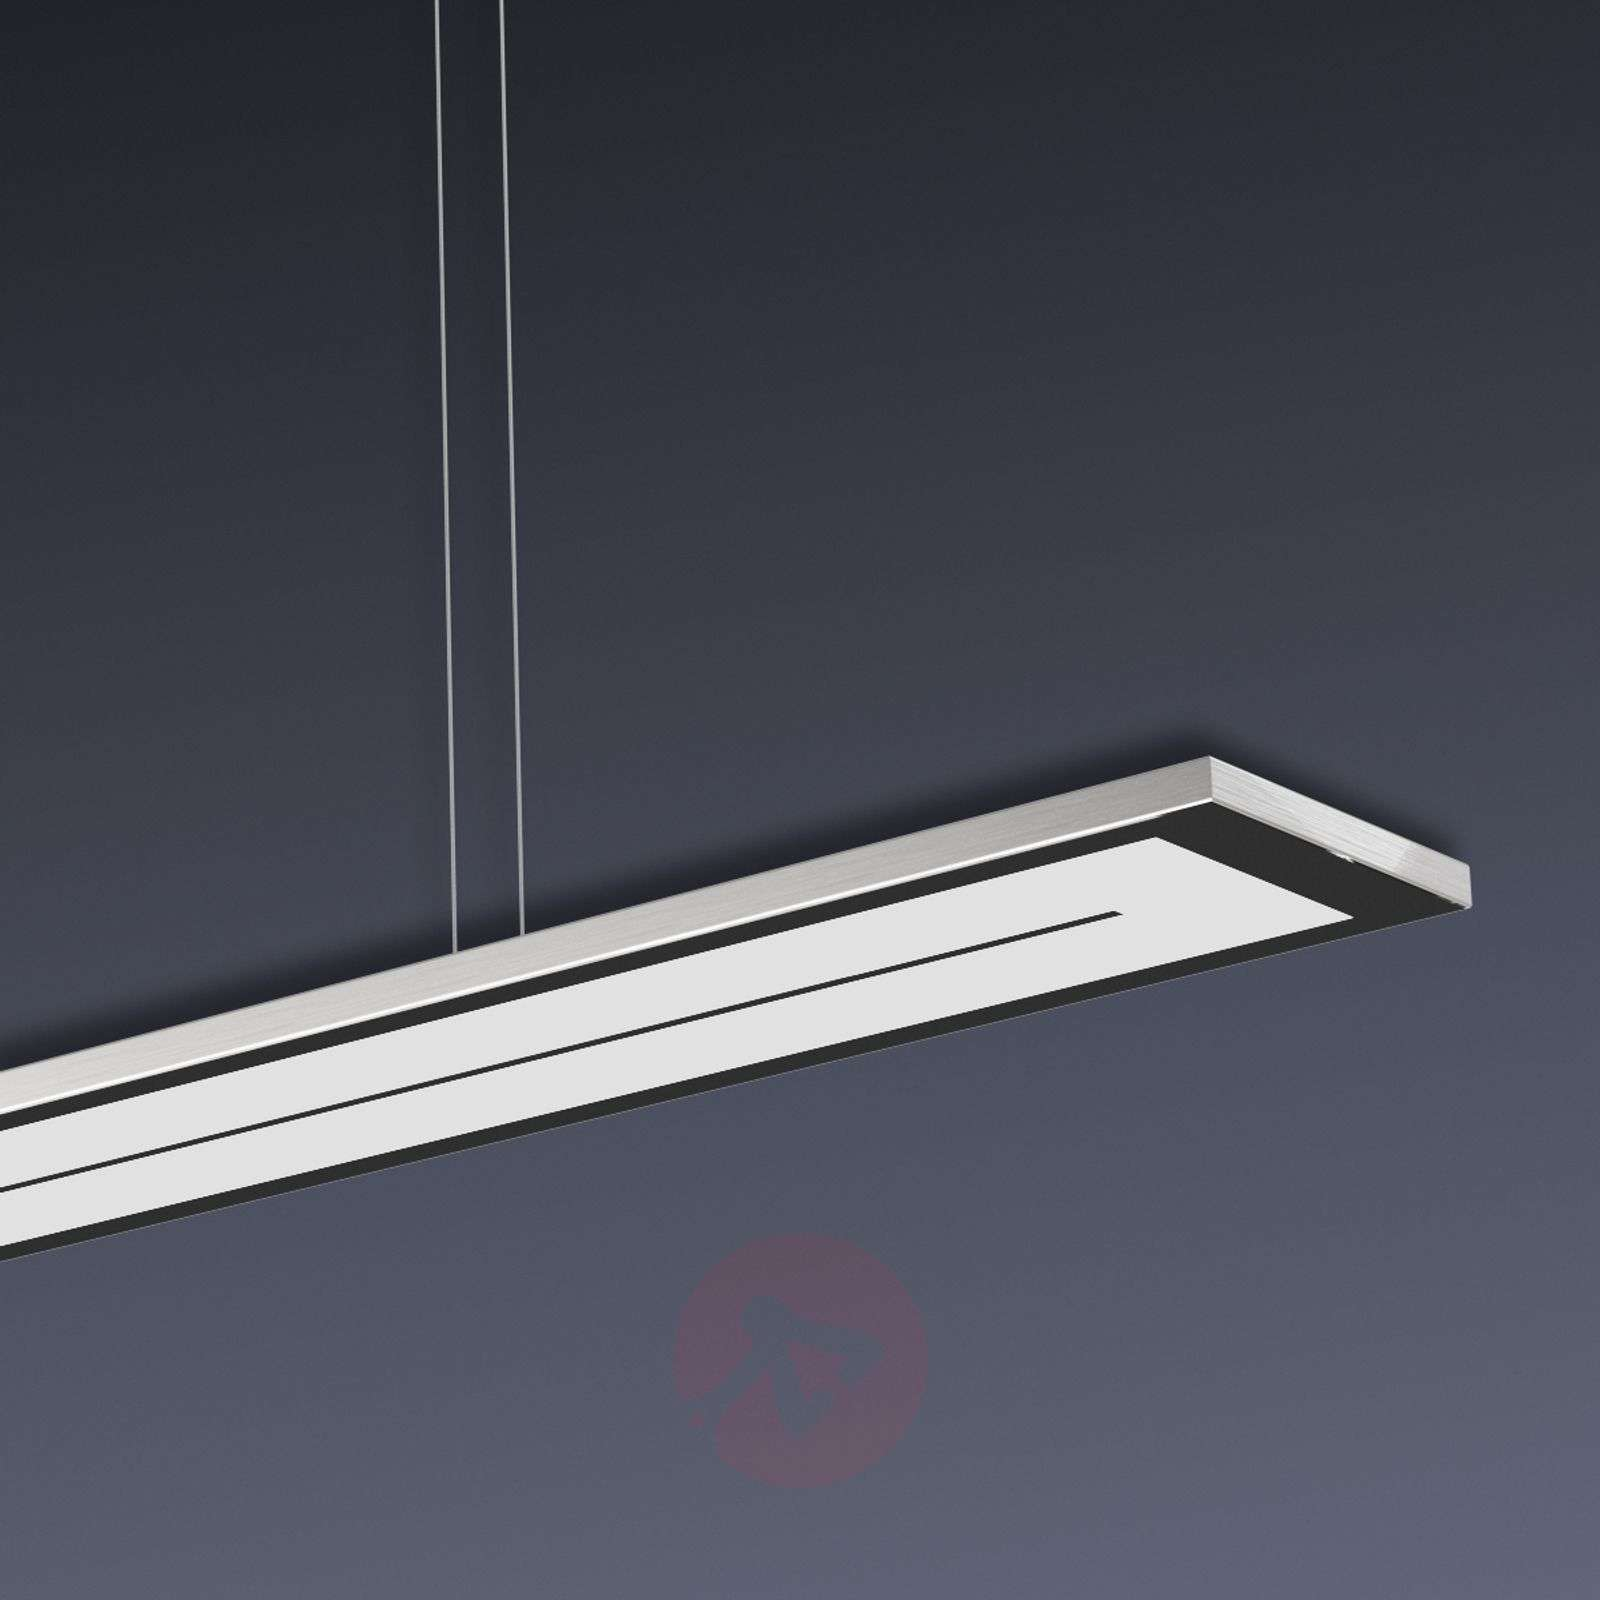 Suspension LED Zen 138 cm-3025229-01